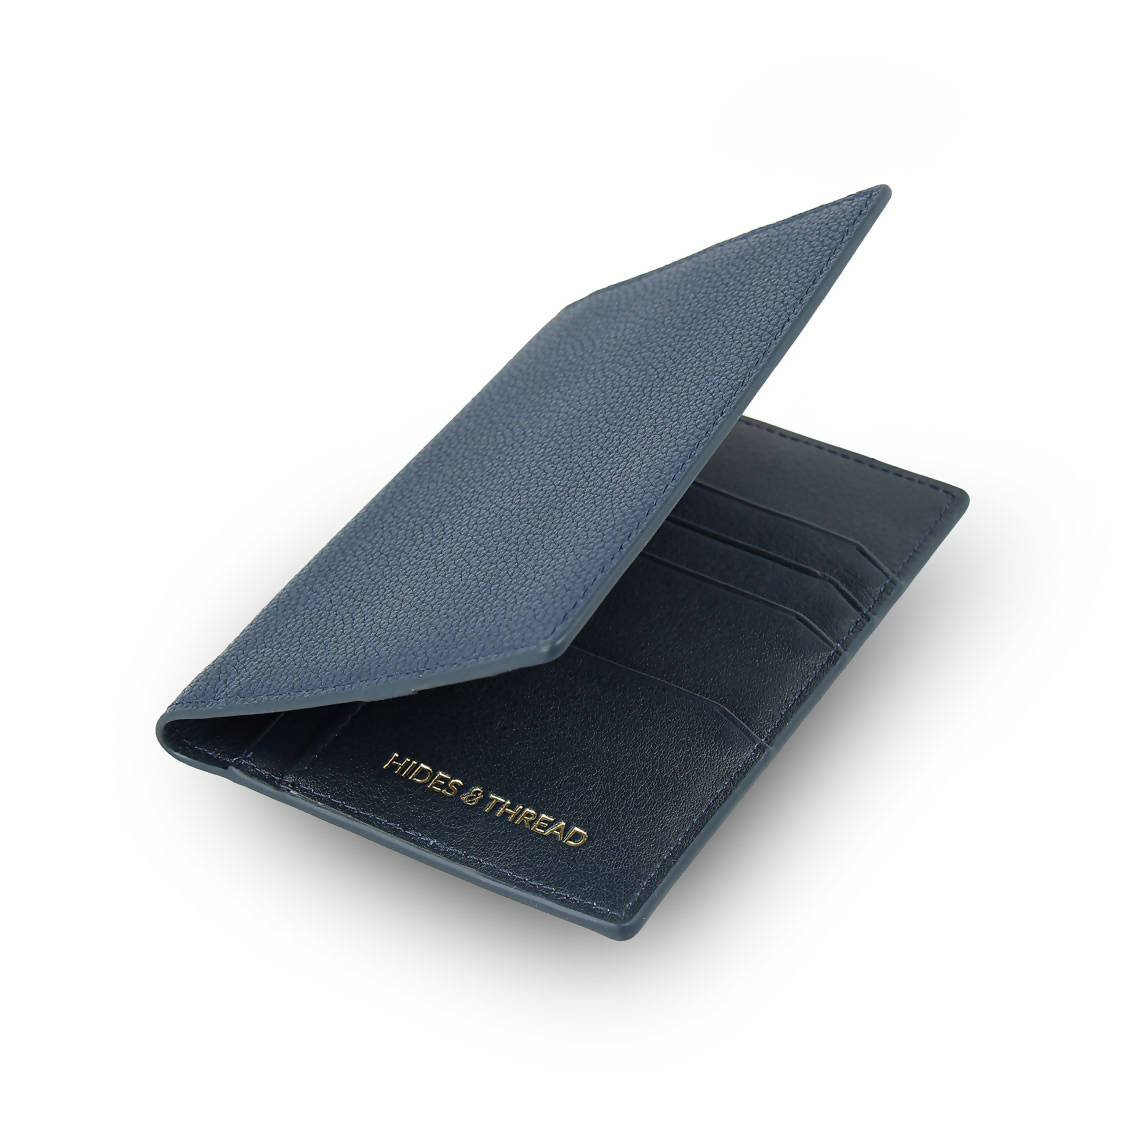 Atlas Leather Passport Sleeve - Passport Holders - Hides and Thread - Naiise